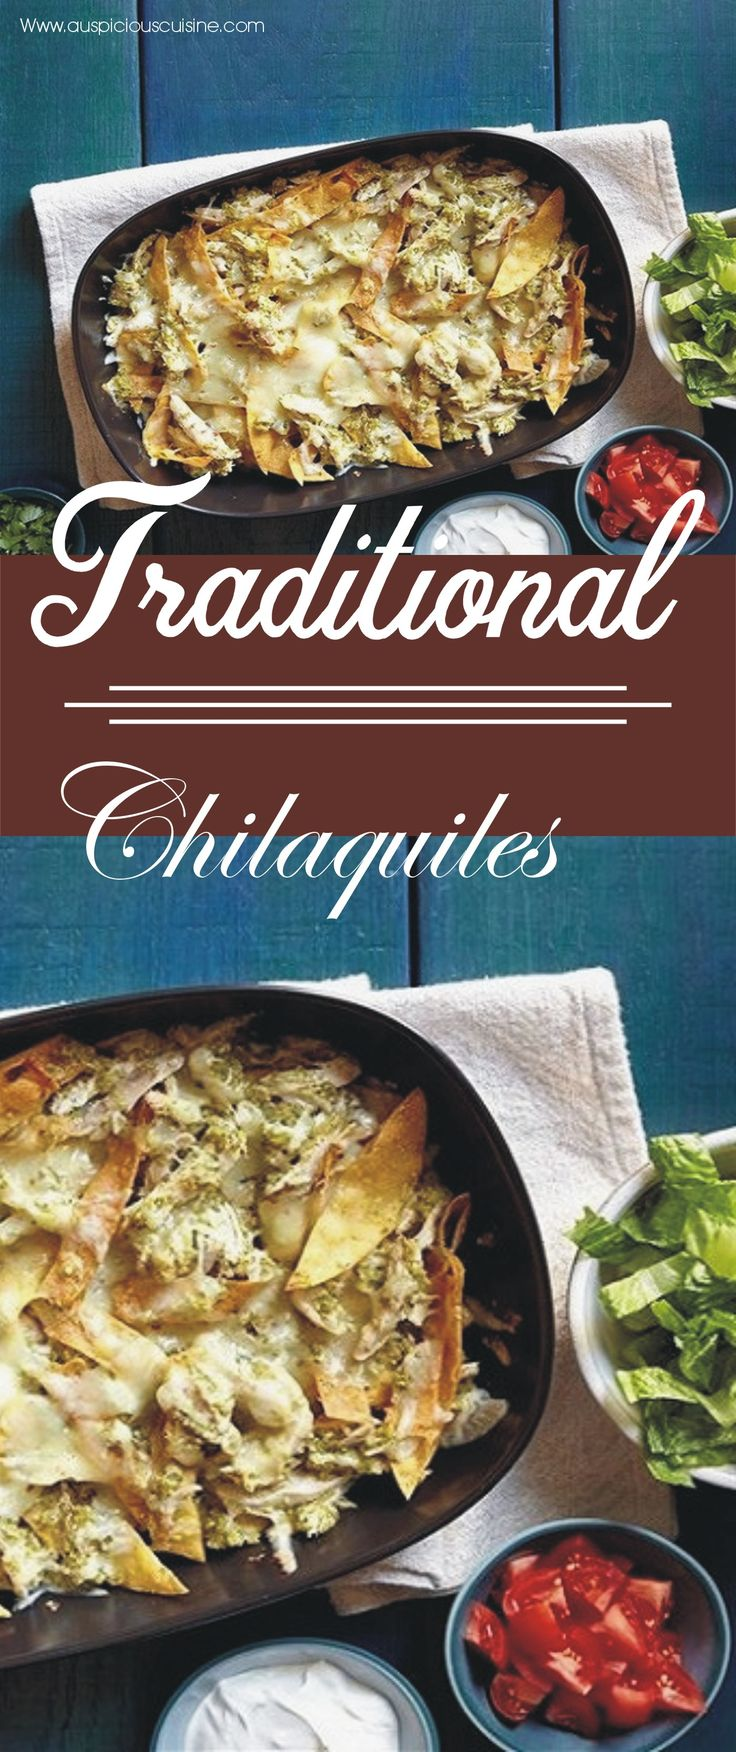 Chilaquiles is a traditional kind of dish which is perfect for growing children as it is enriched with fats and proteins the best to get energy. The spicy flavor of different peppers along with soothing cheese flavor makes this dish an all- time favorite food for children.